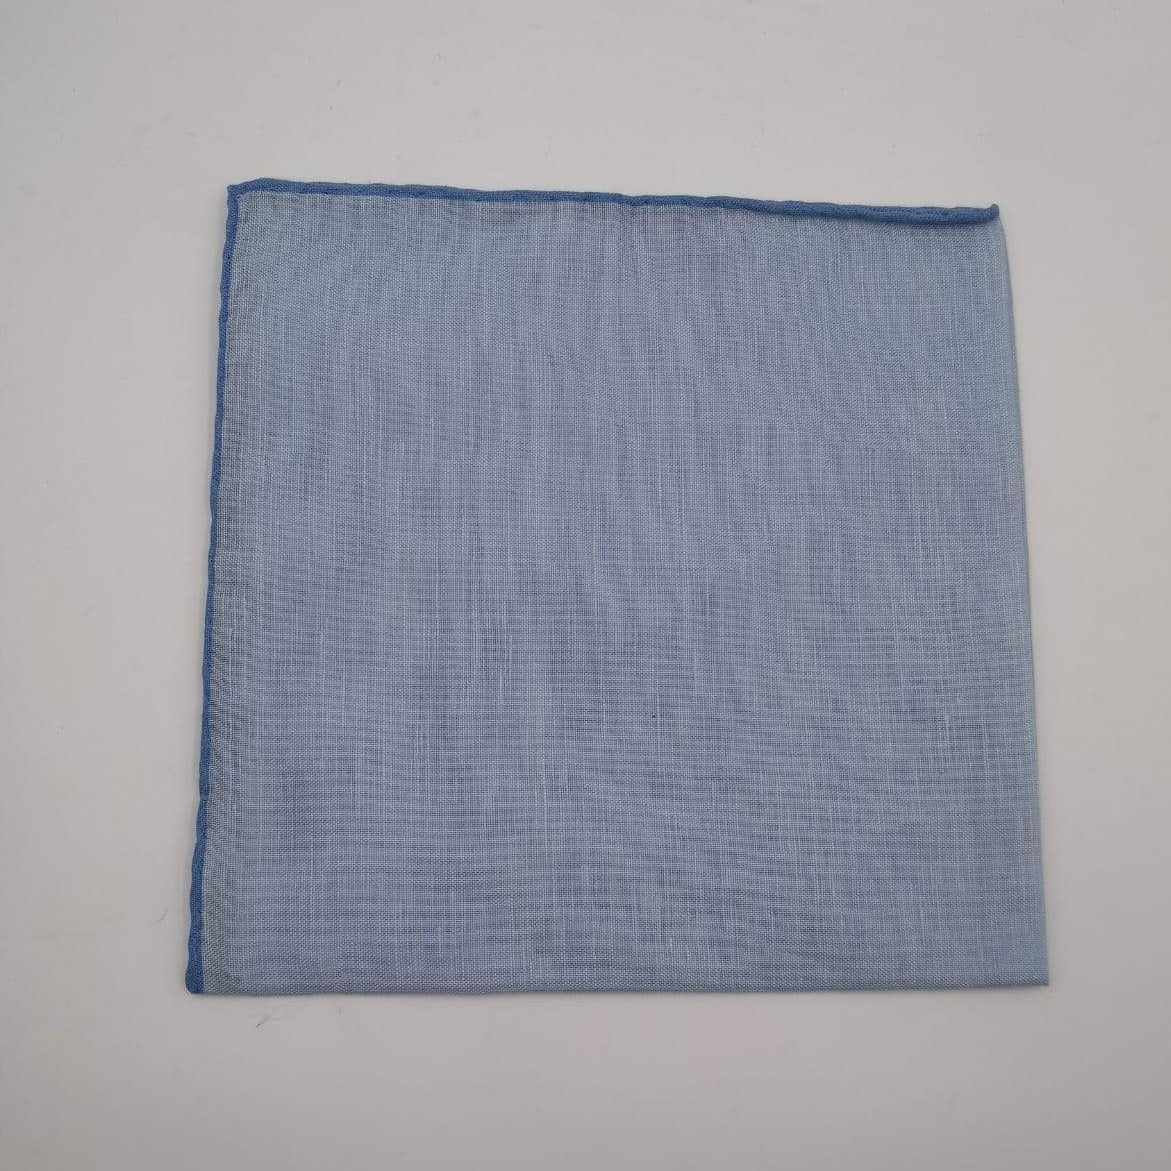 Cruciani & Bella 60%Linen 40% Cotton Hand-rolled  -  Pocket Square Light Blue  Handmade in Italy 39 cm X 39cm #4562